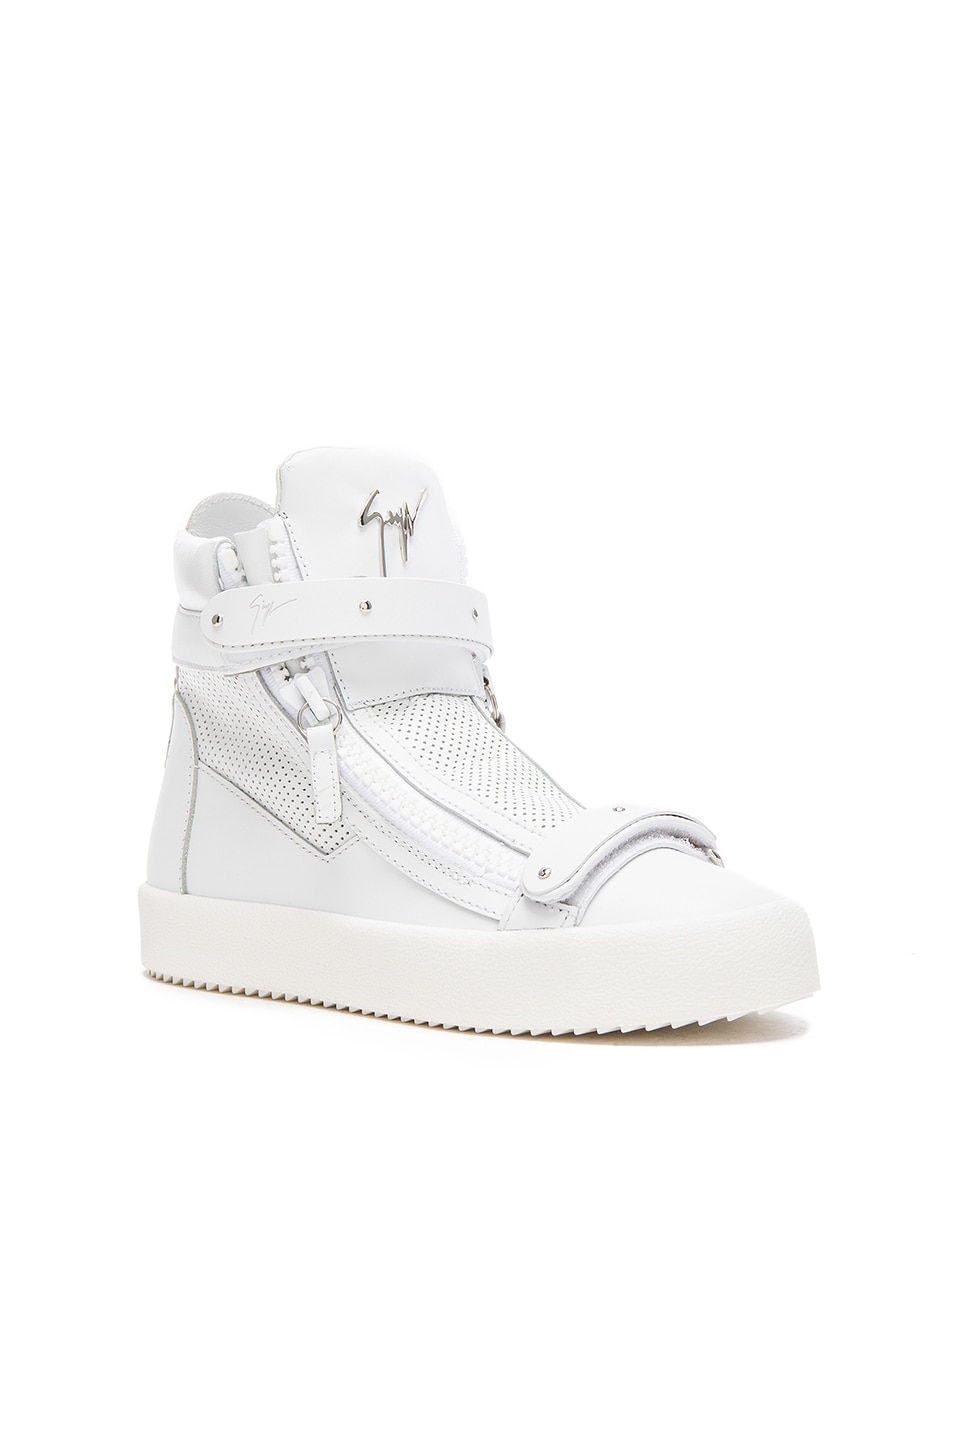 Image 2 of Giuseppe Zanotti Perforated Leather High Top Sneakers in White